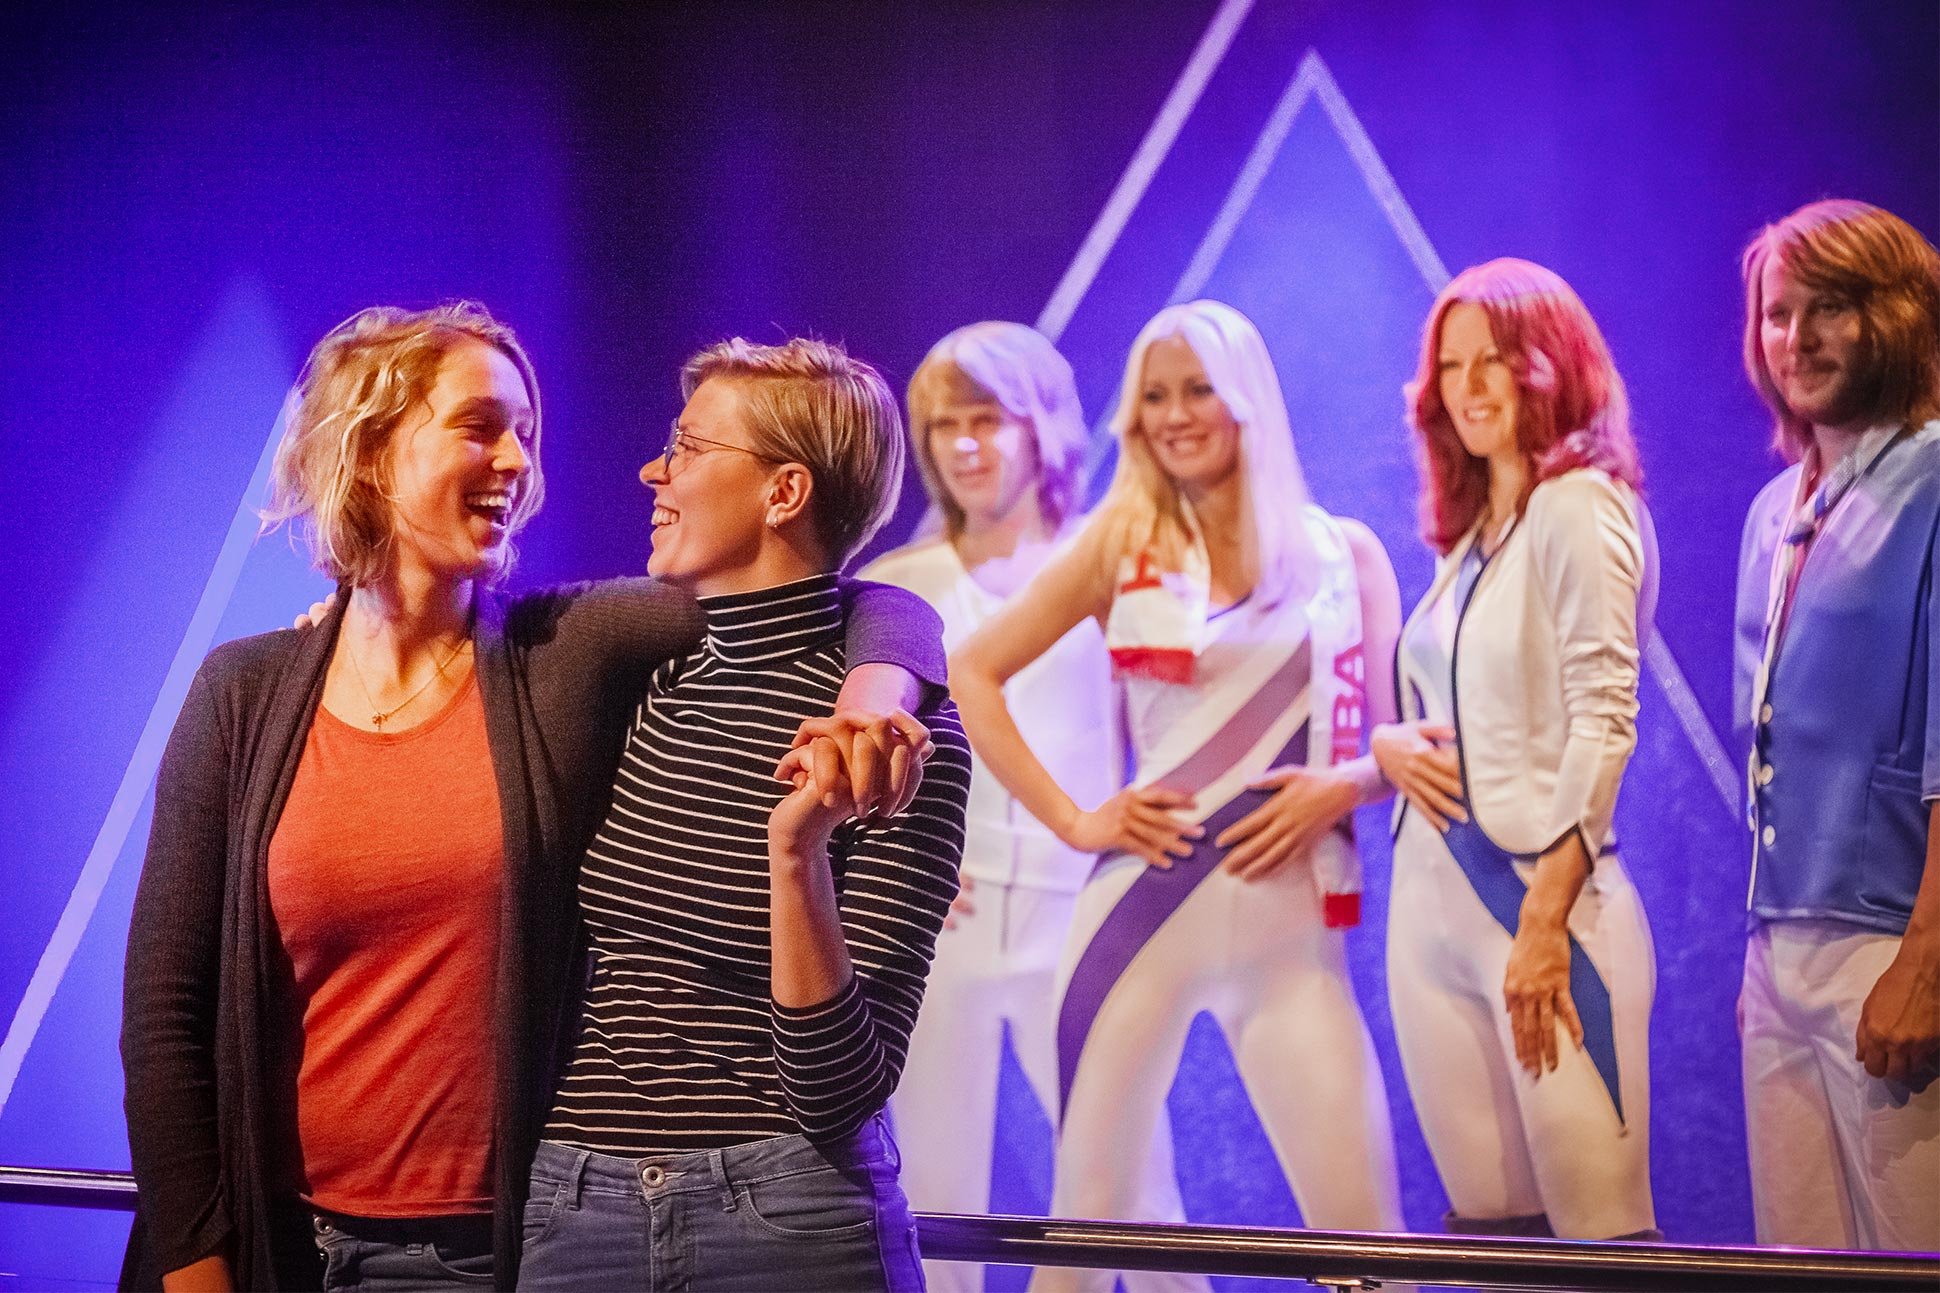 Instagrammers @onceuponajrny at ABBA The Museum, Stockholm, Sweden